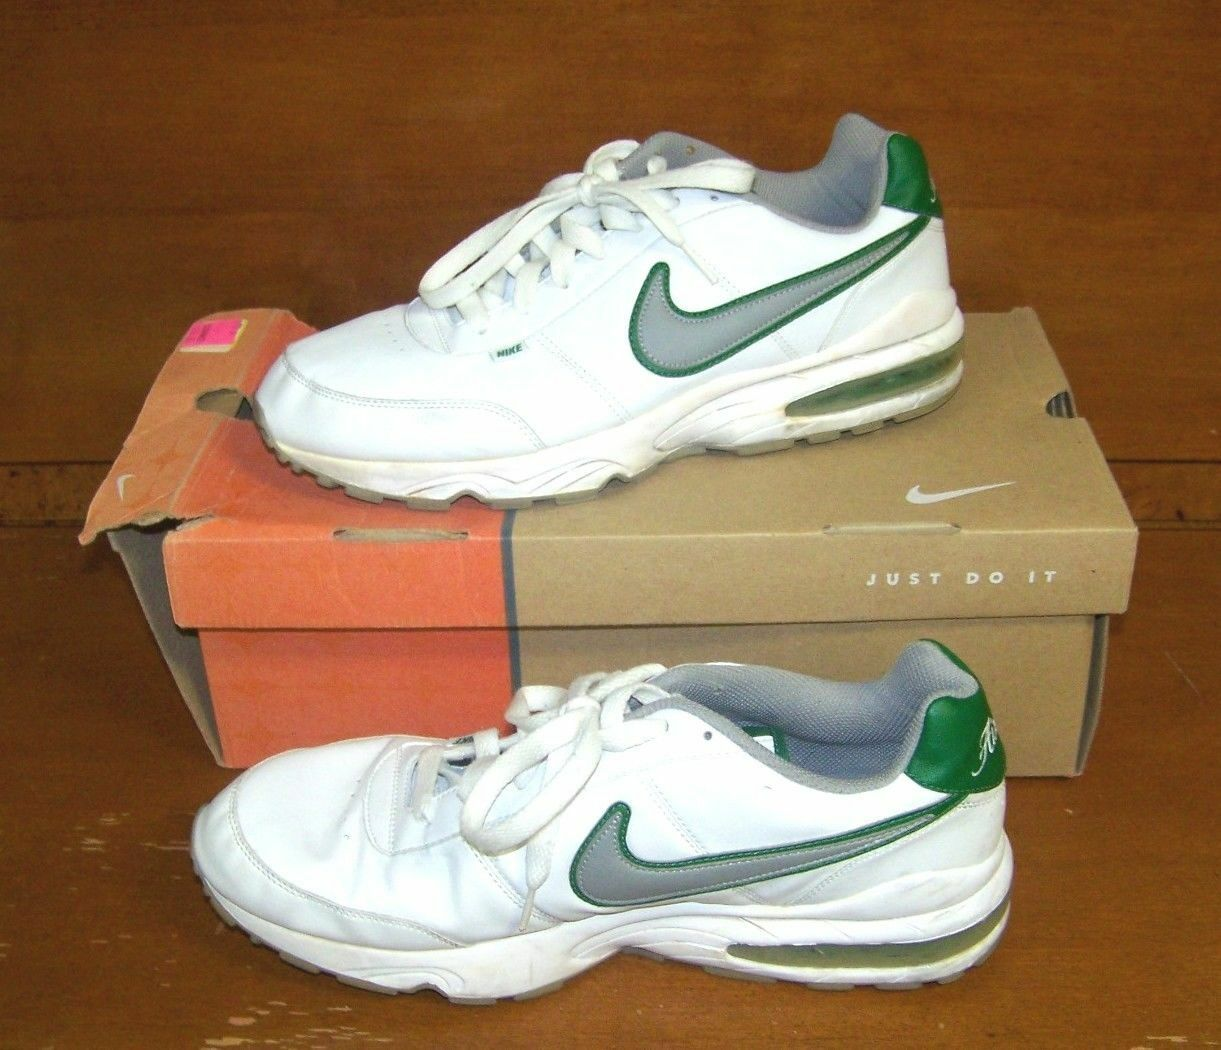 Nike Air Max Men's (Size 12) USED Green & White Tennis shoes In shoes Box